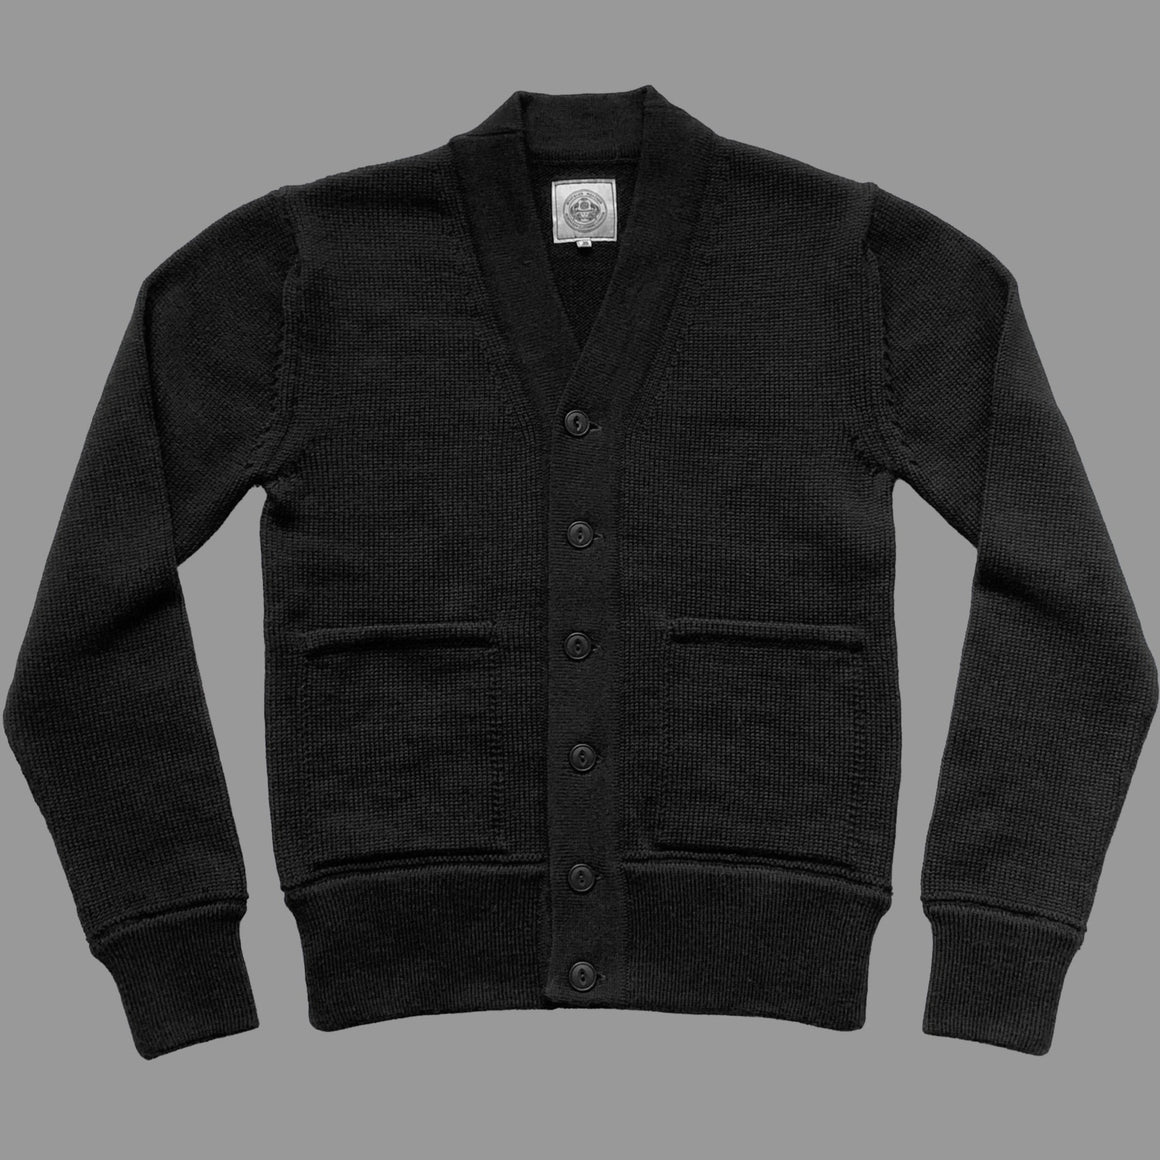 NEW - THE ENGINEER CARDIGAN - BLACK